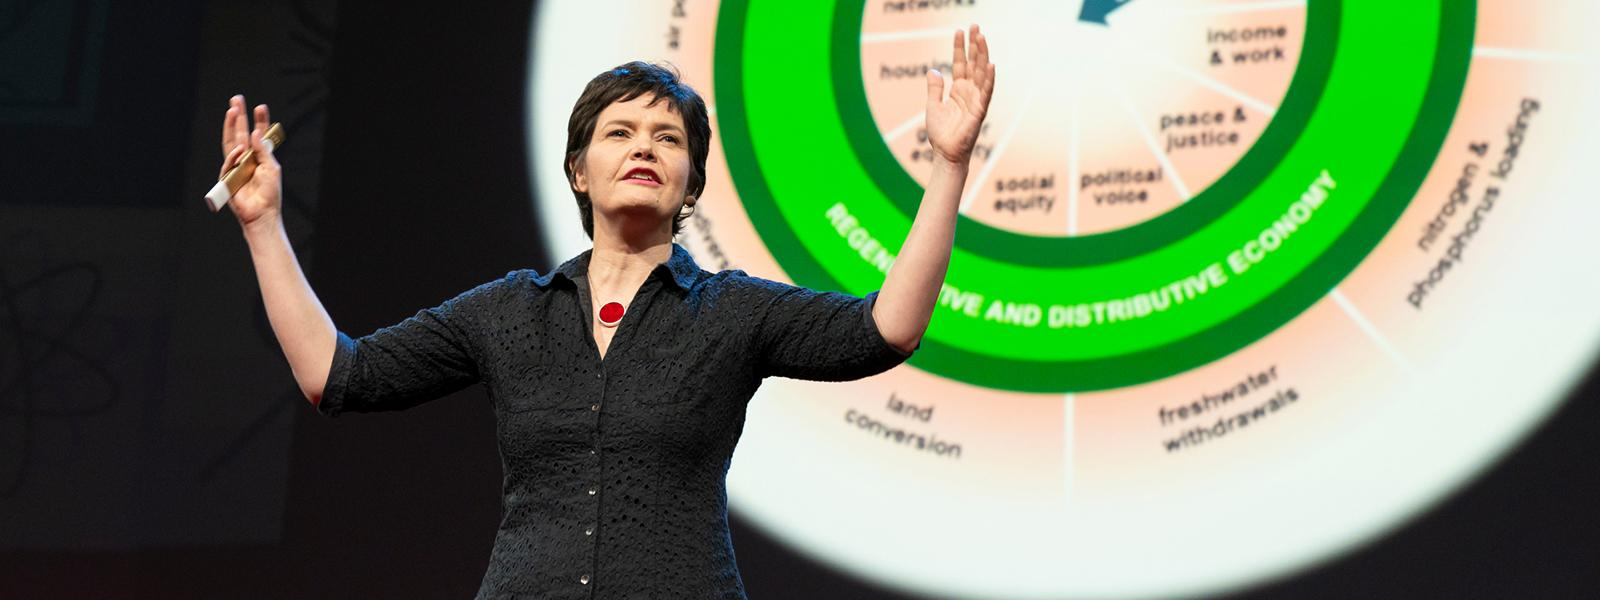 Kate Raworth speaks at TED2018 in Vancouver